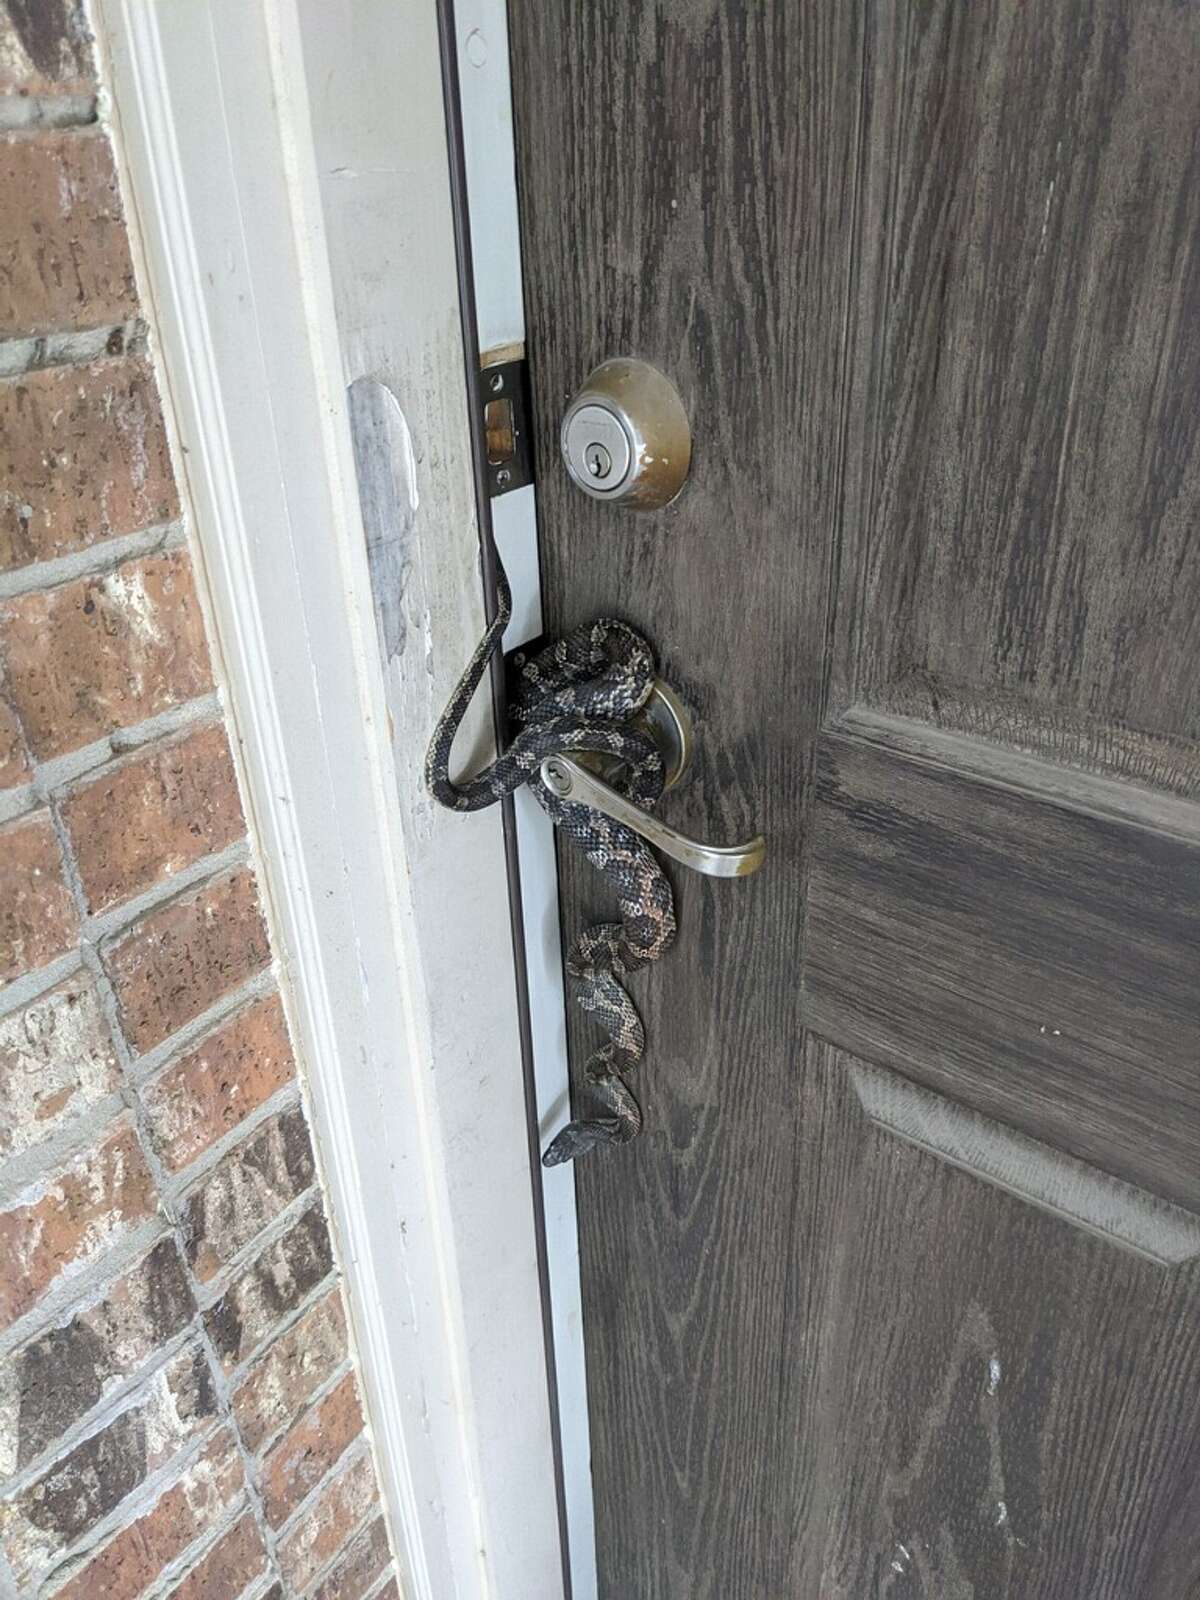 When Jose Perez opened his front door on Sunday, he encountered an unexpected guest hanging on the door knob of his South Side home. The visitor was a